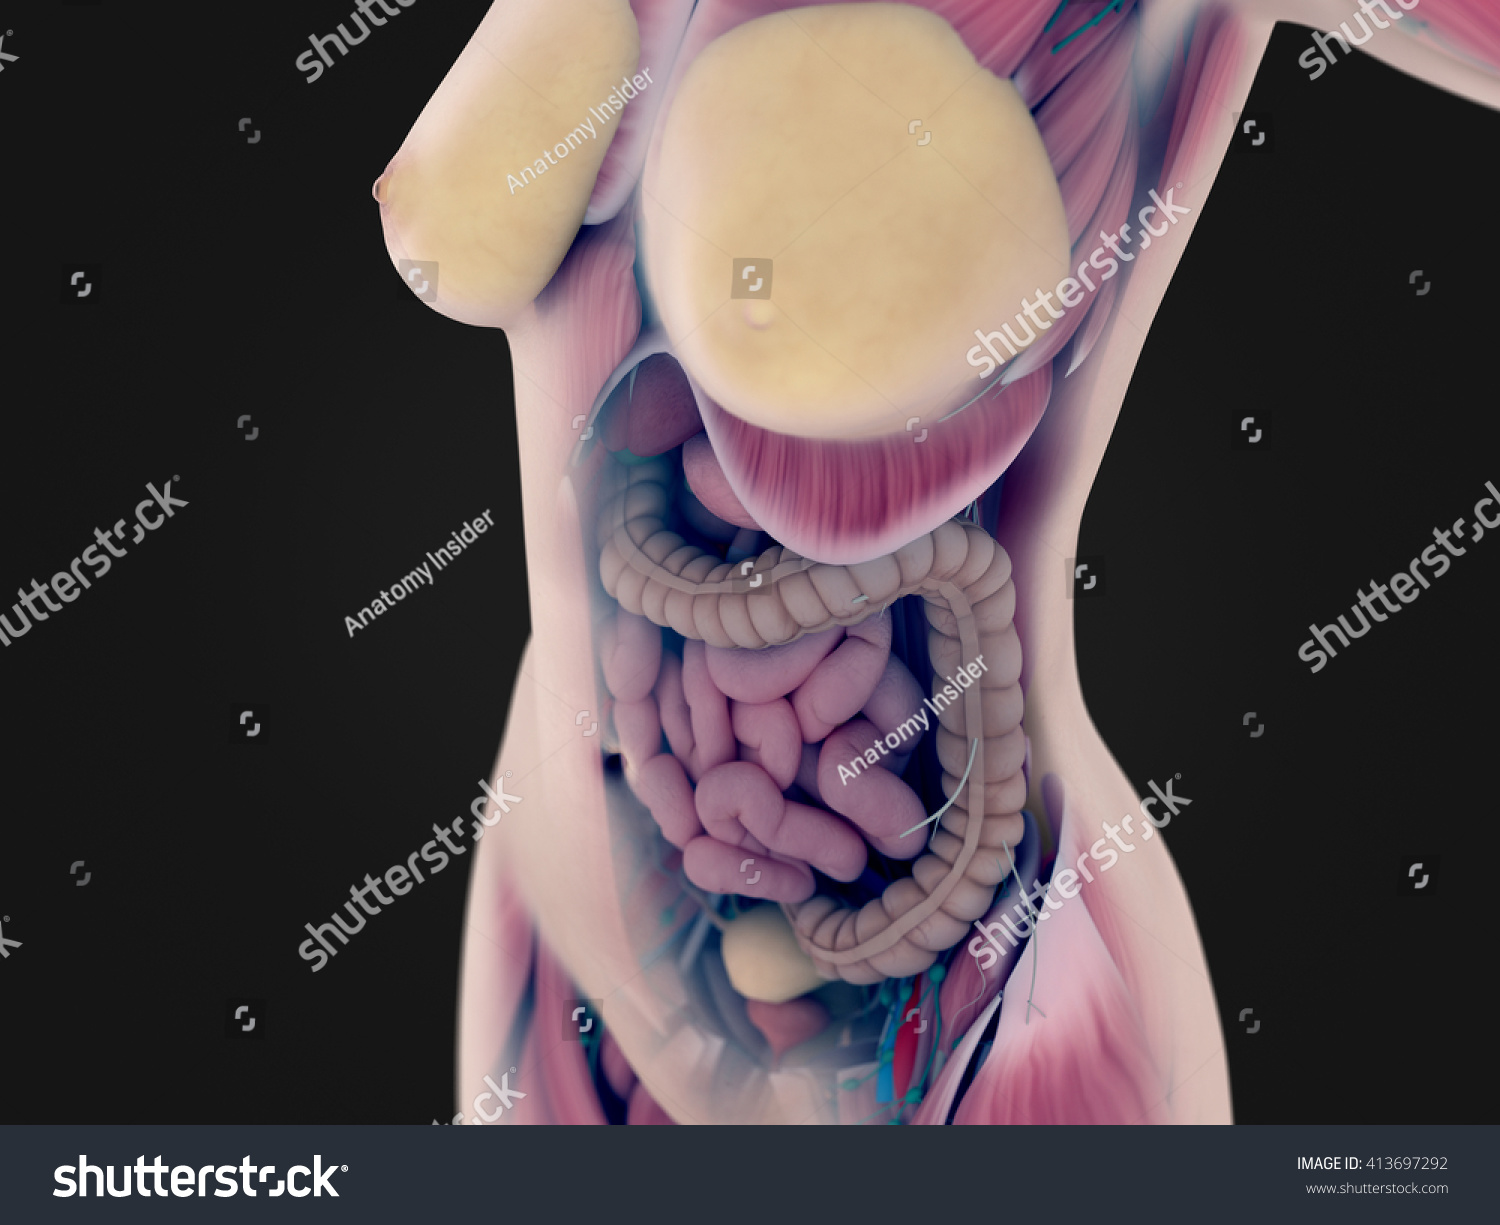 Female Anatomy Torso Showing Intestines Xraylike Stock Illustration ...